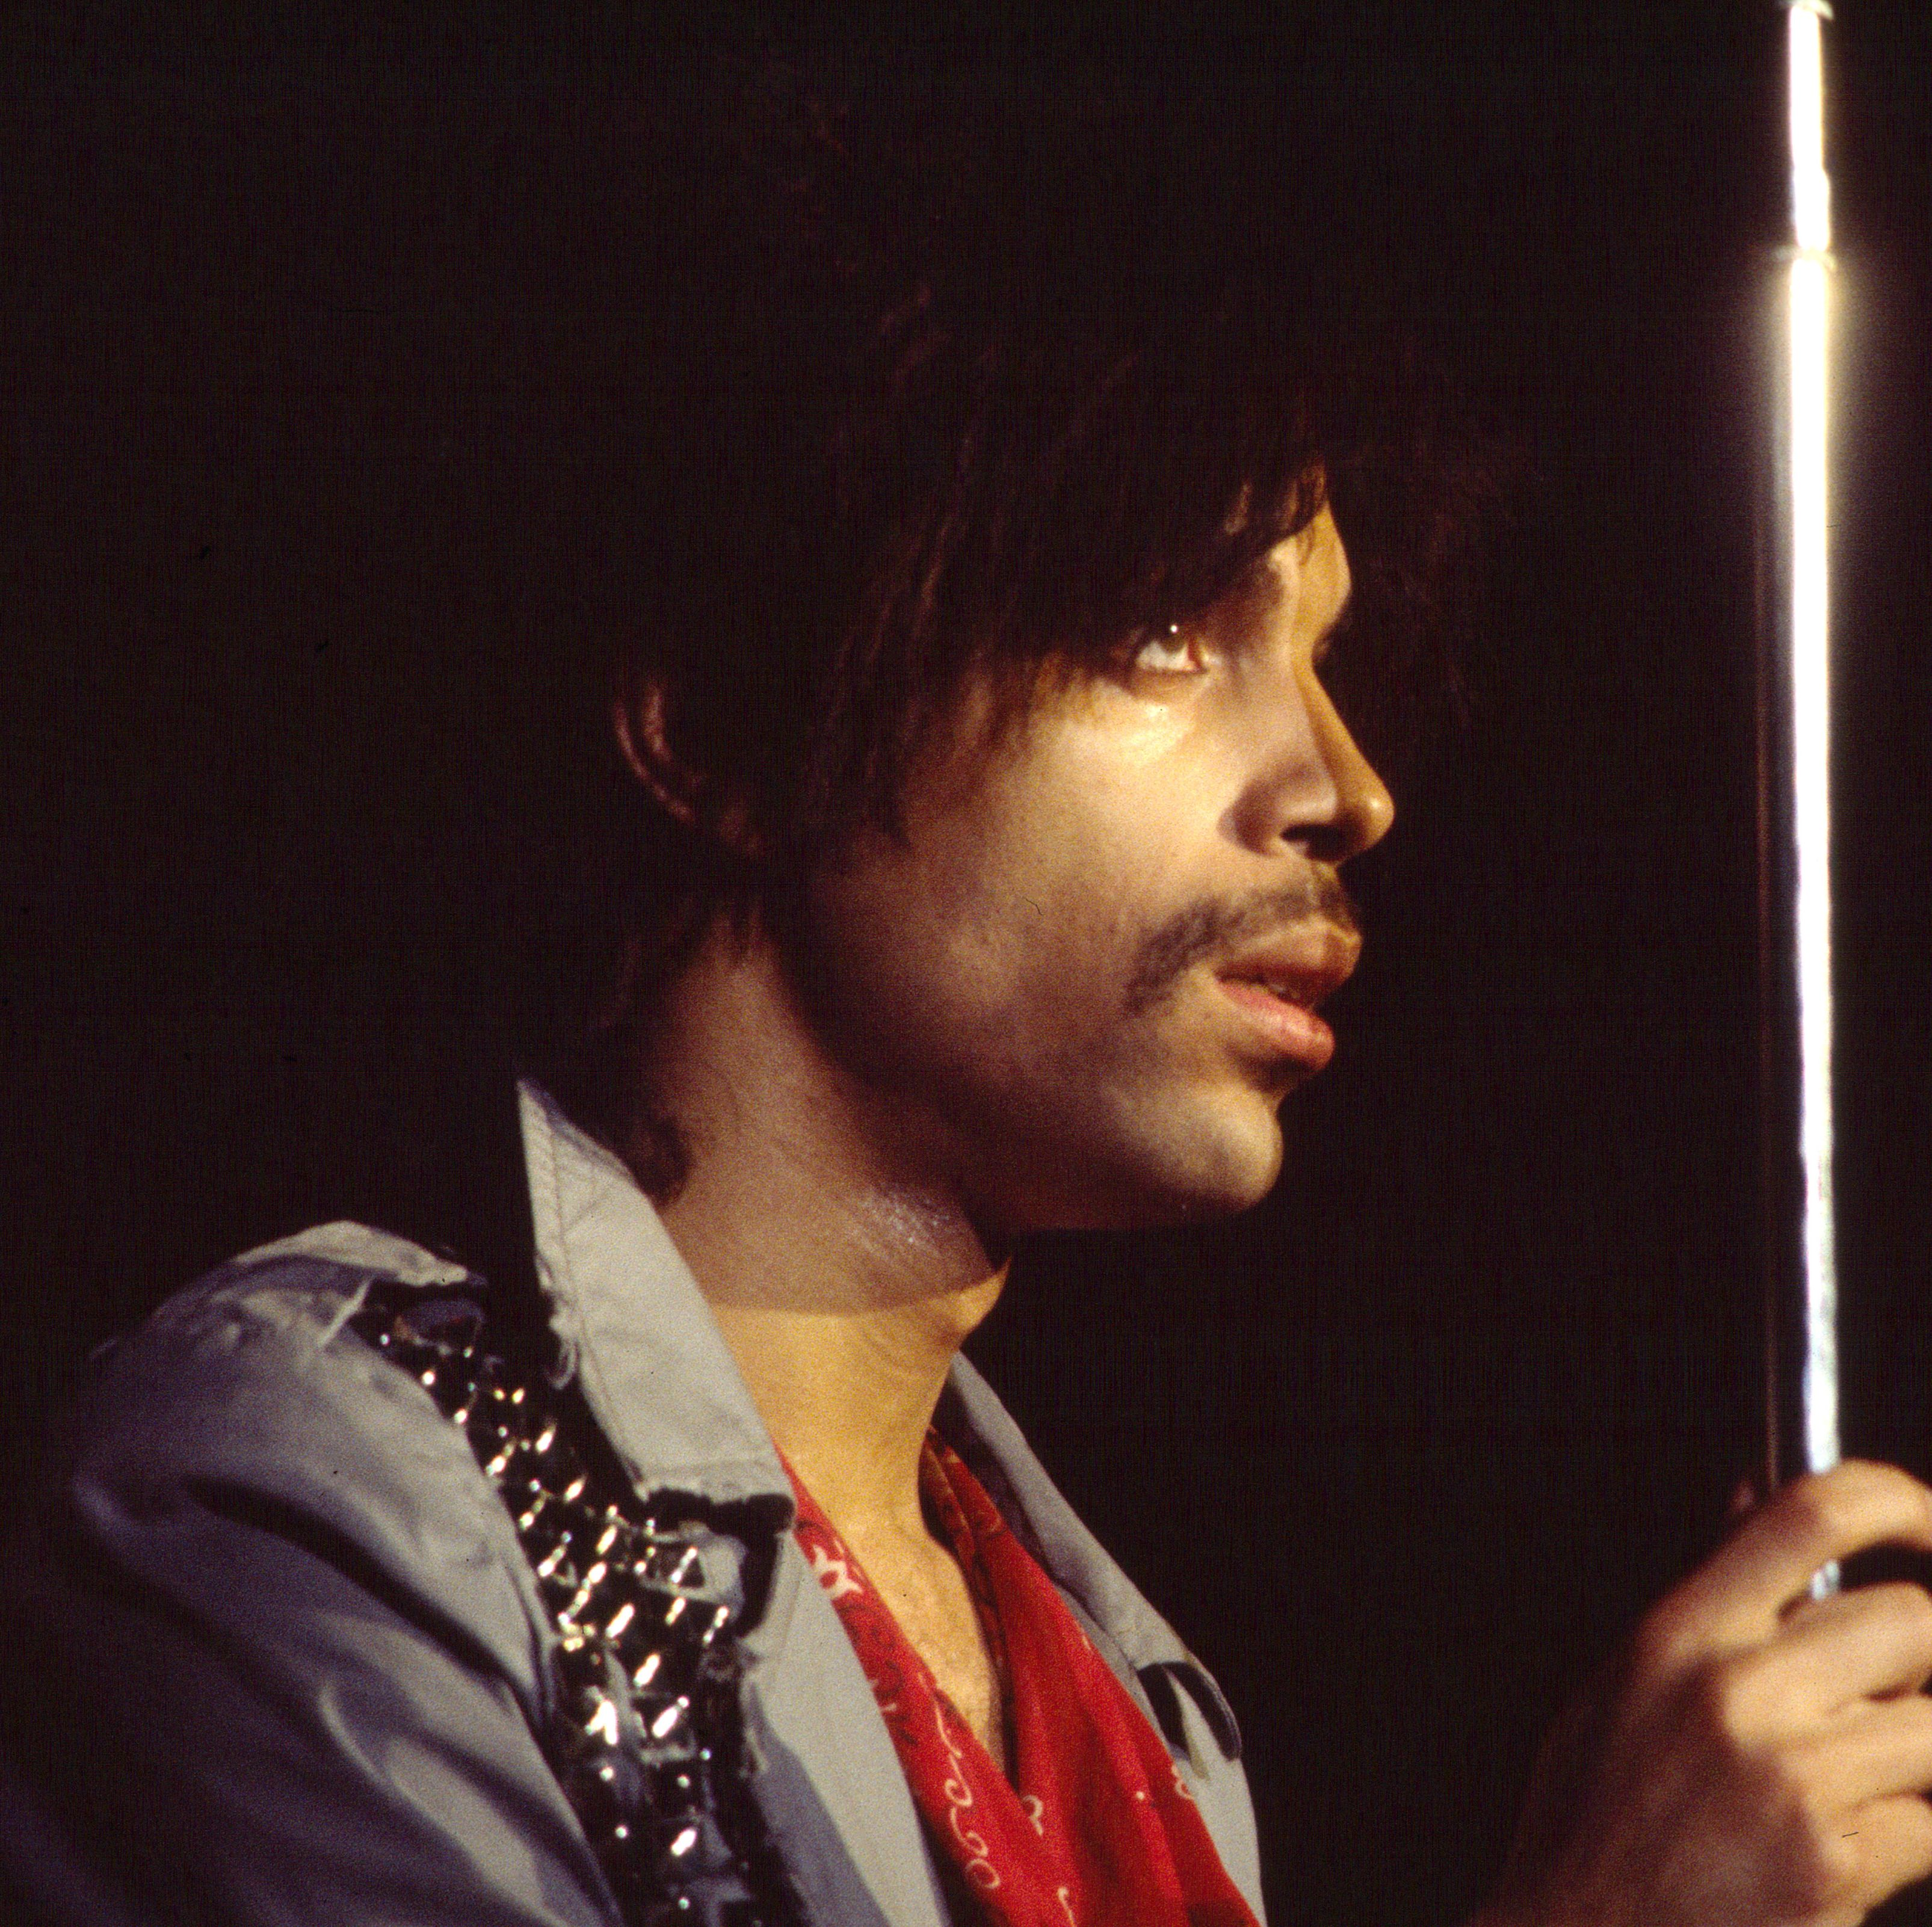 1981: Prince The iconic musician and performer kept a neat, trimmed 'stache that complemented his groovy outfits and various hairstyles.